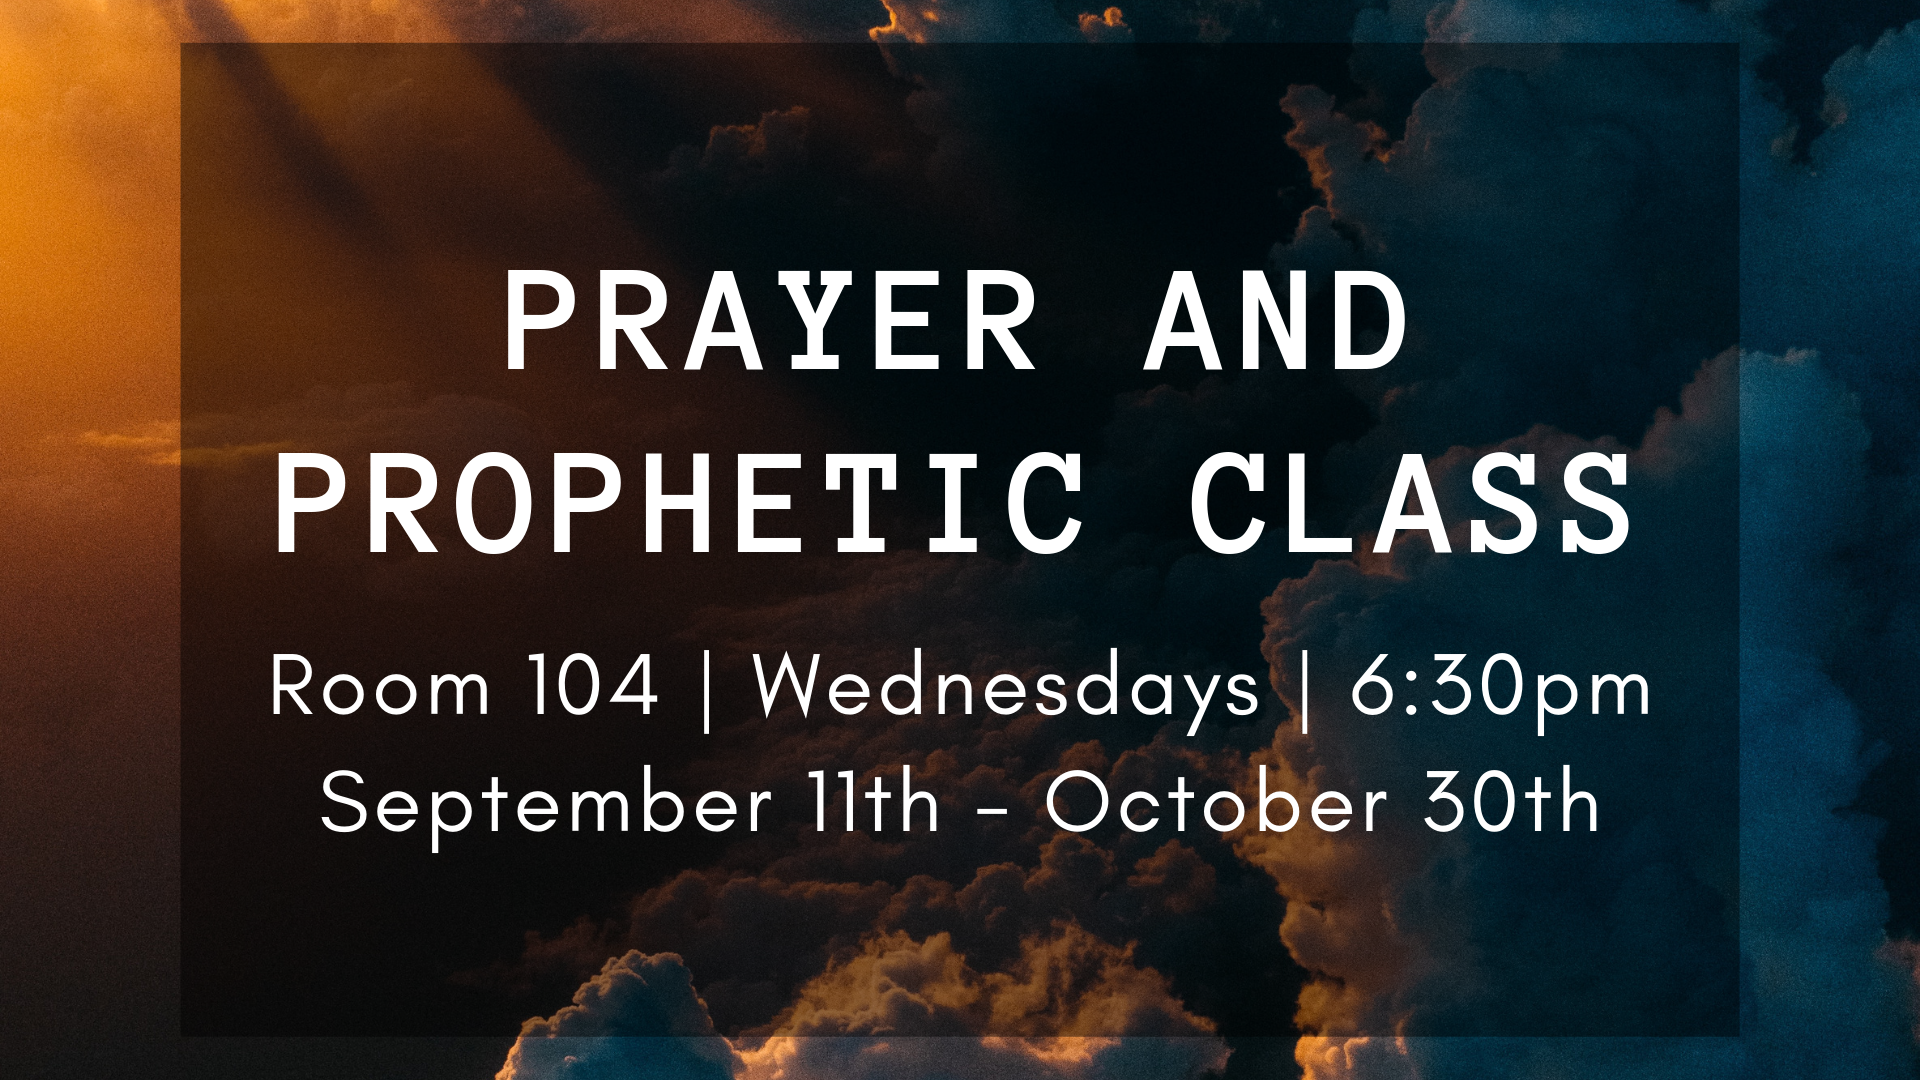 Prayer and Prophetic Class.png